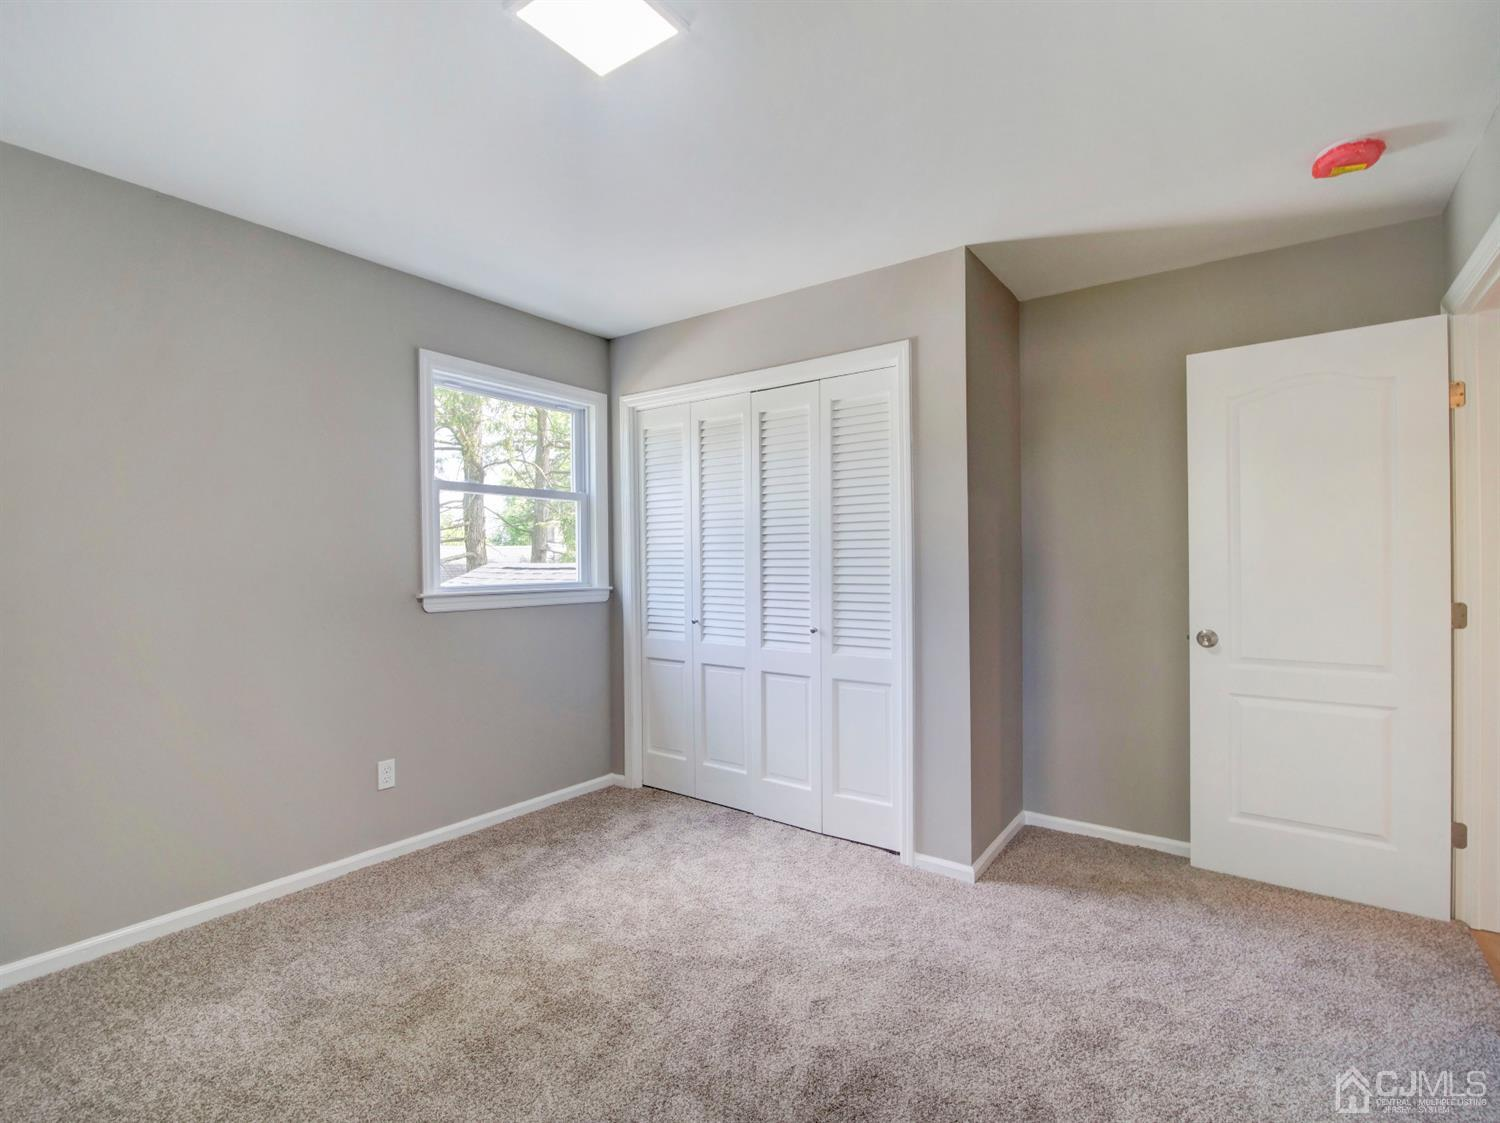 3rd bedroom of 4 upstairs with double closet